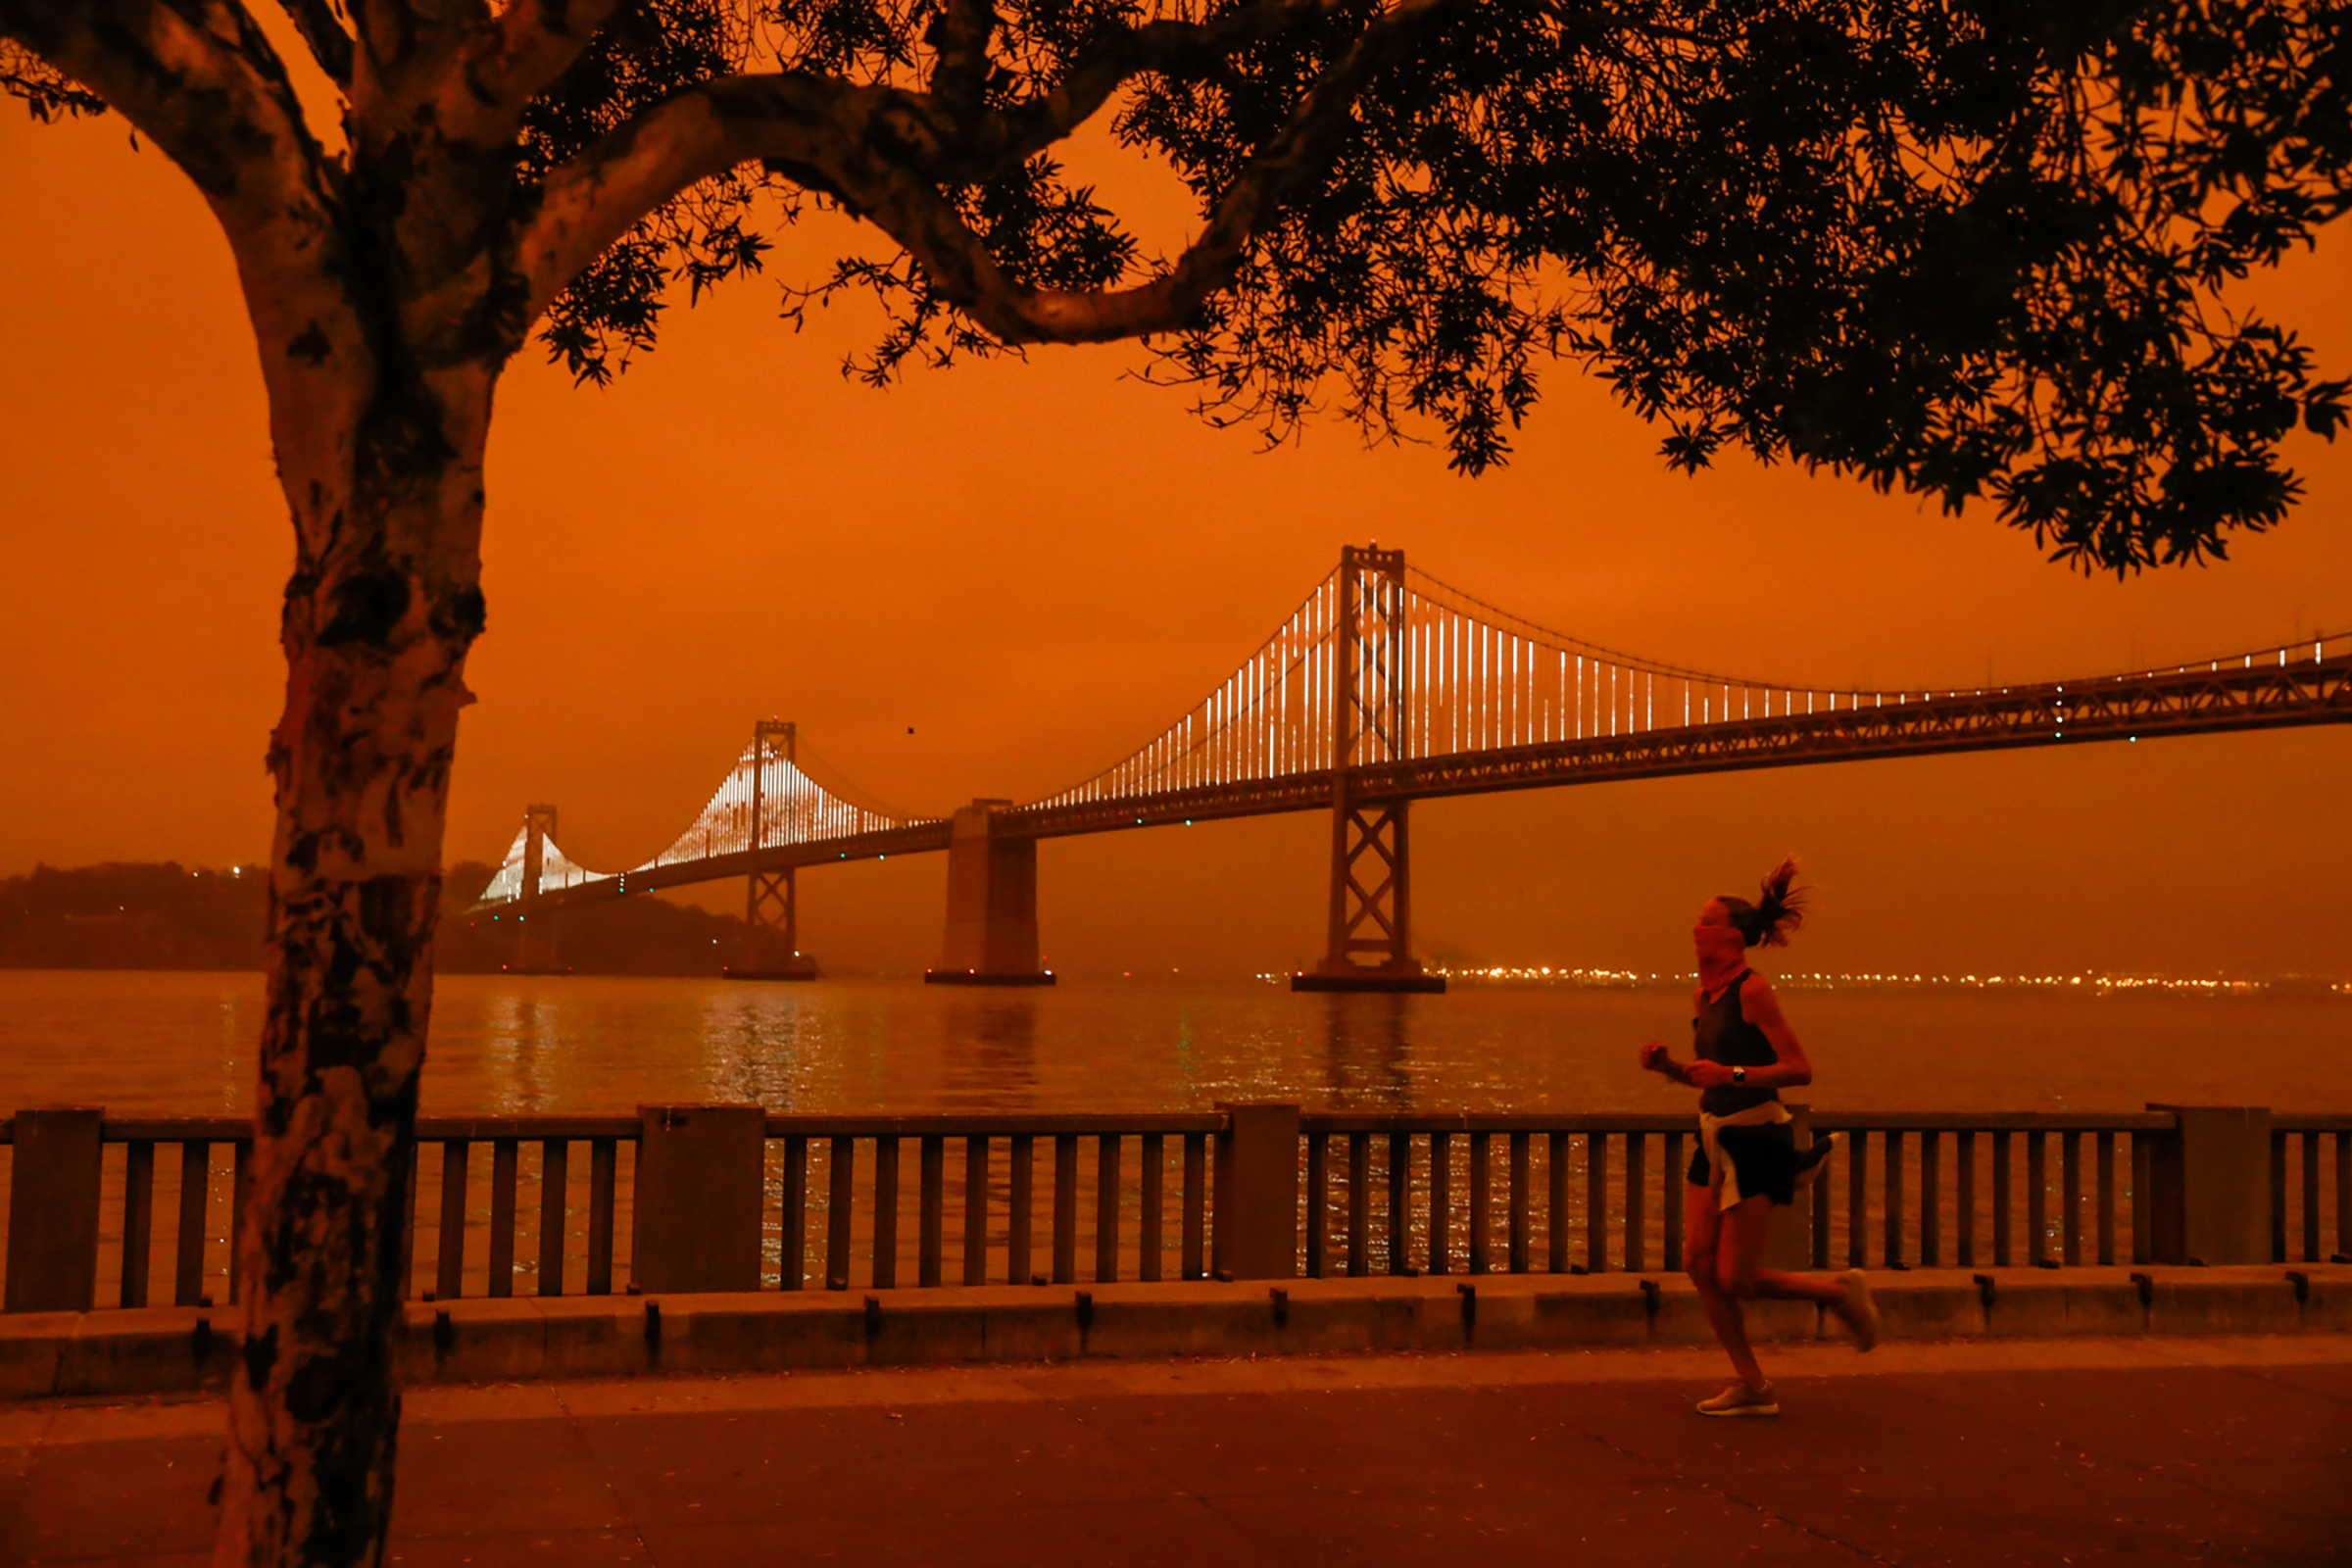 Downtown San Francisco on Sept. 9, 2020, as multiple wildfires burn across California and Oregon.